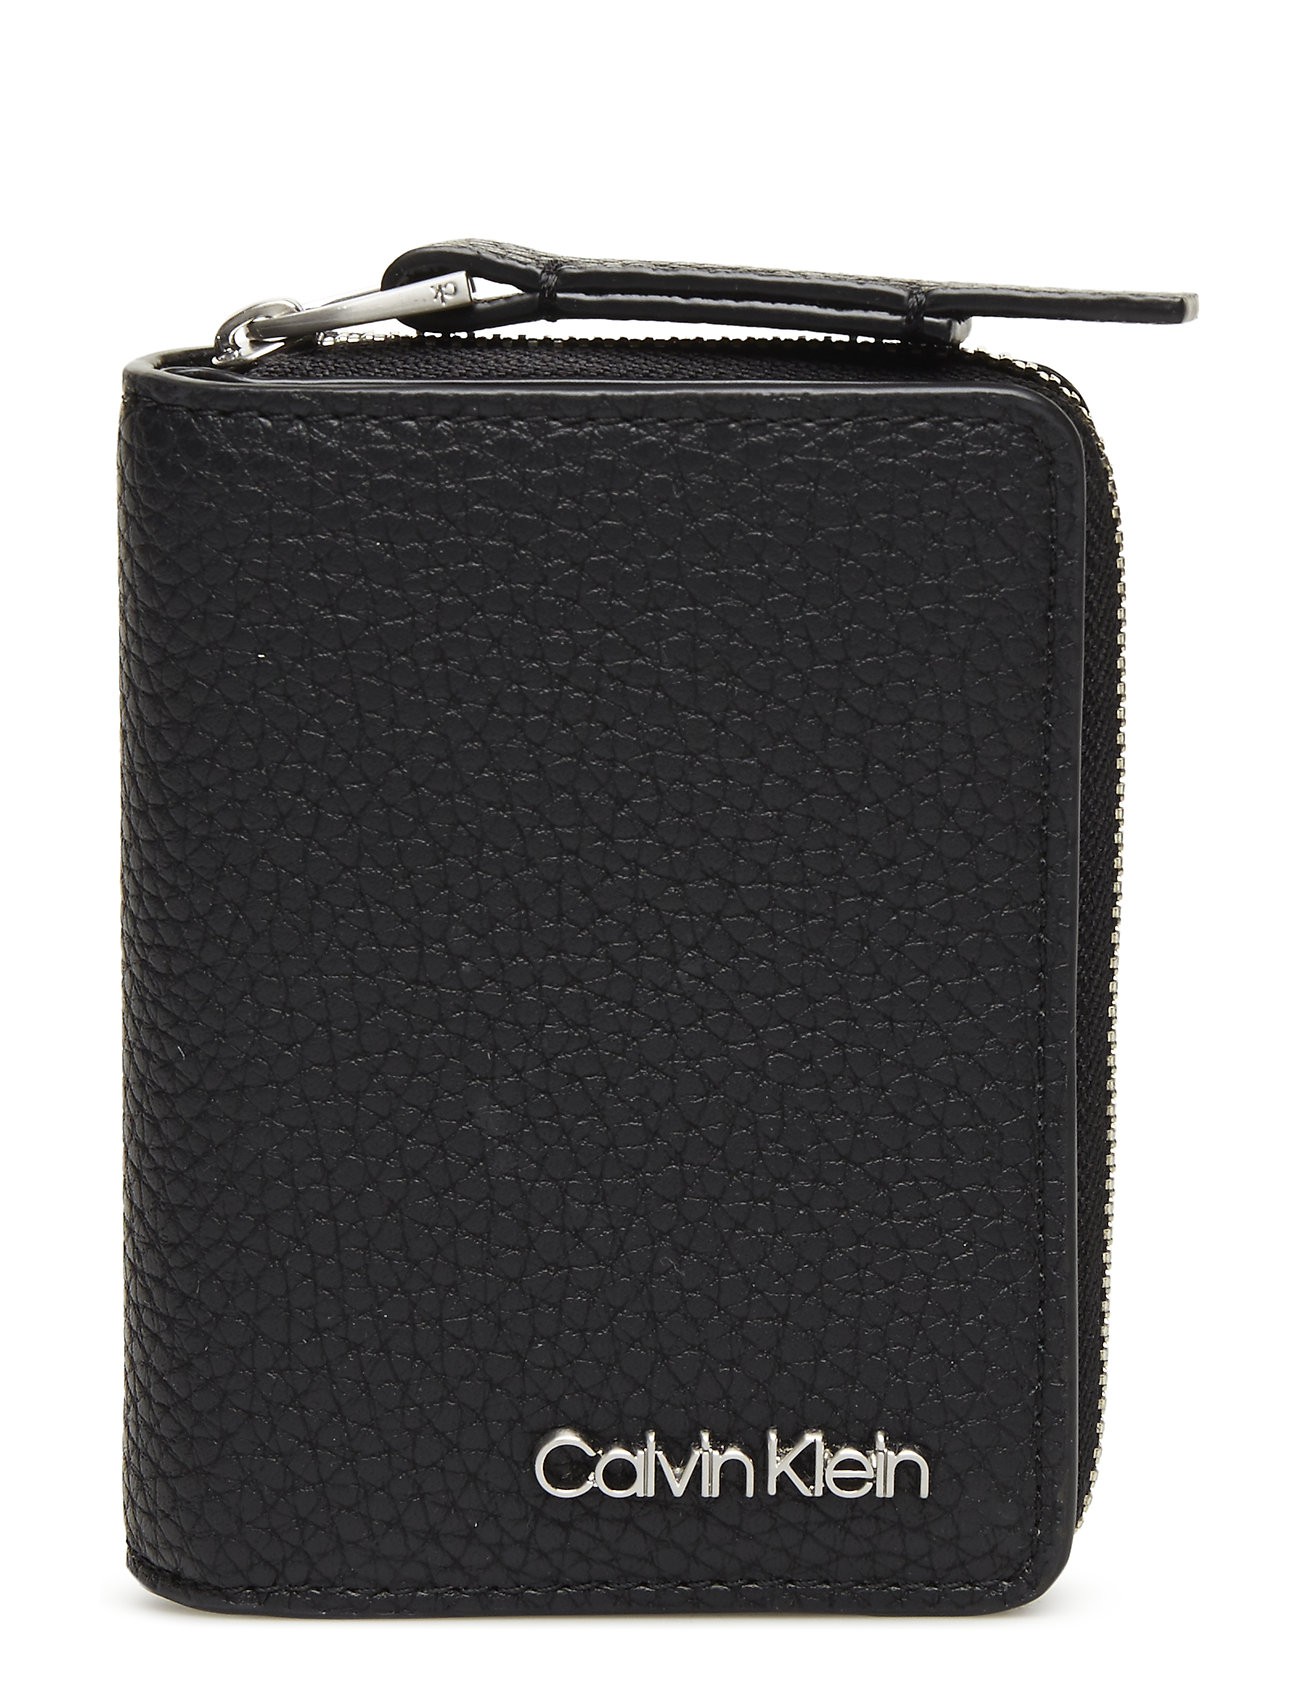 Ck Base Small Wallet